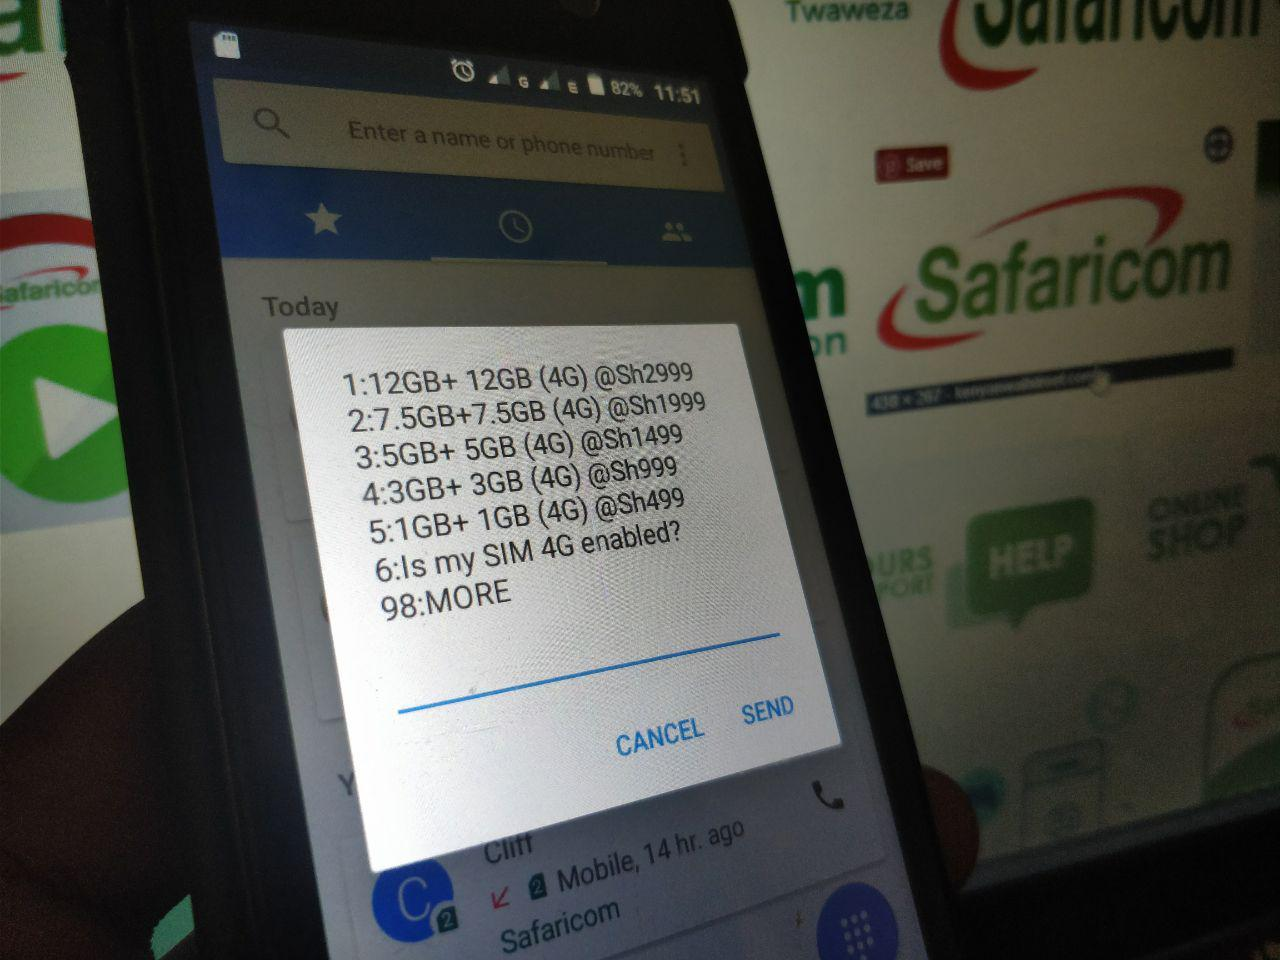 Safaricom's Double Data Promotion gives you extra bundles